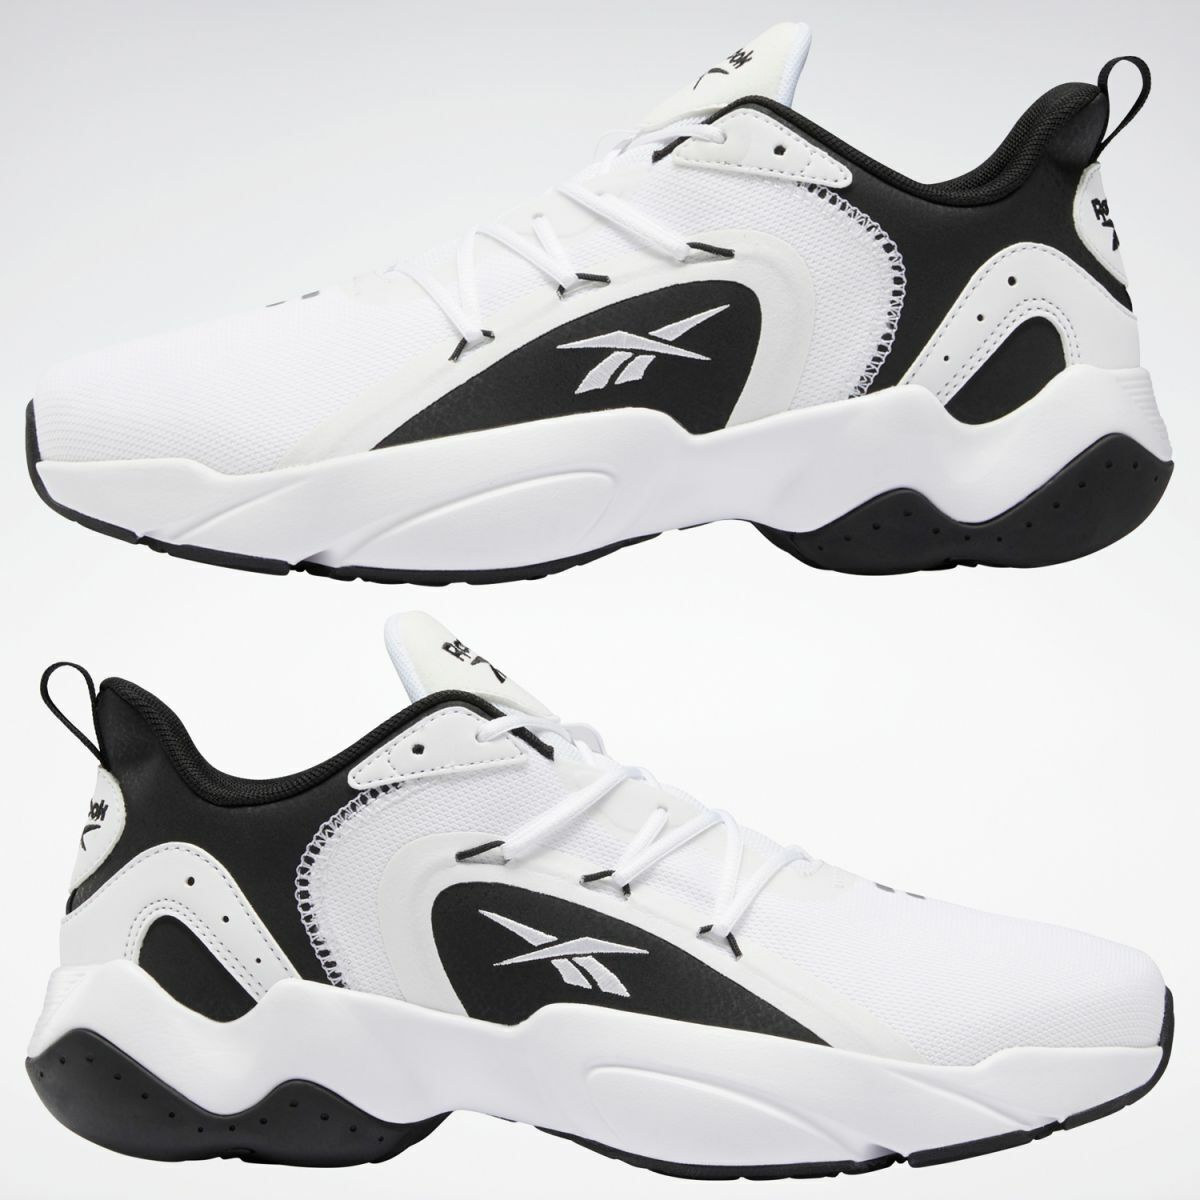 Reebok Unisex Royal Pervader Bold Shoes Classic Running Fashion Style FX2344 New